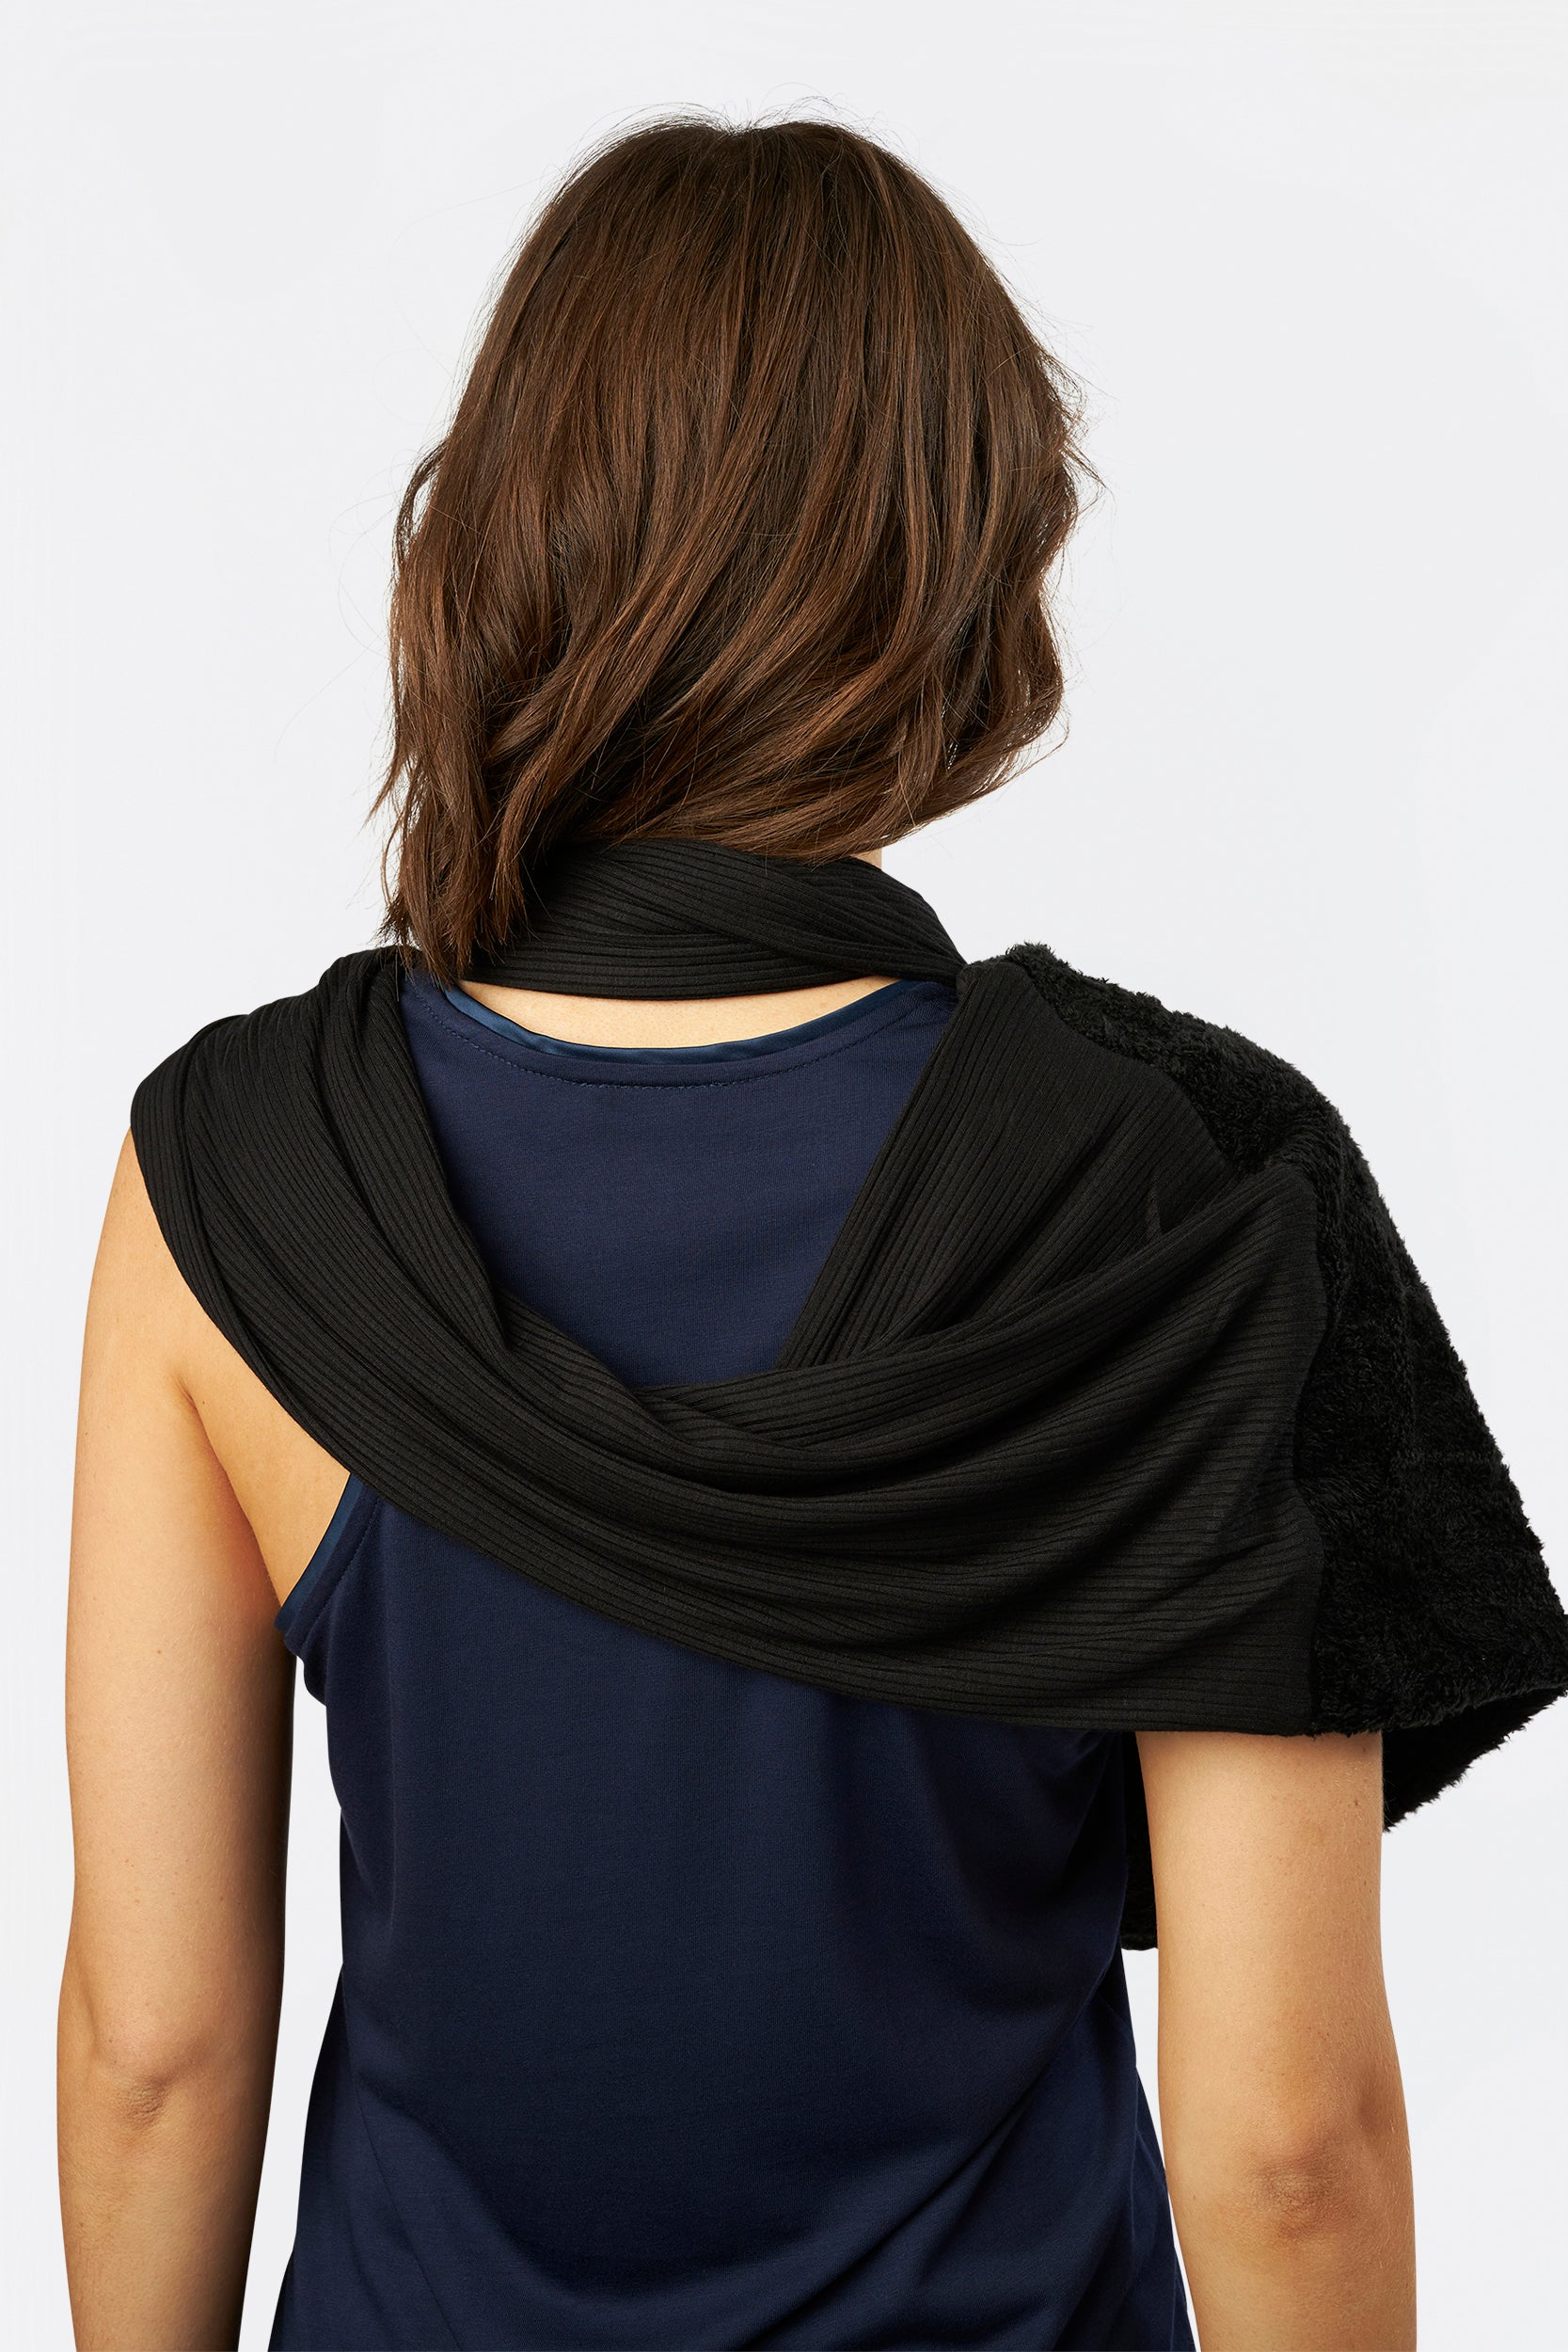 The Eternity Shrug by INLARKIN in black shag blends comfortable knit and luxurious faux fur